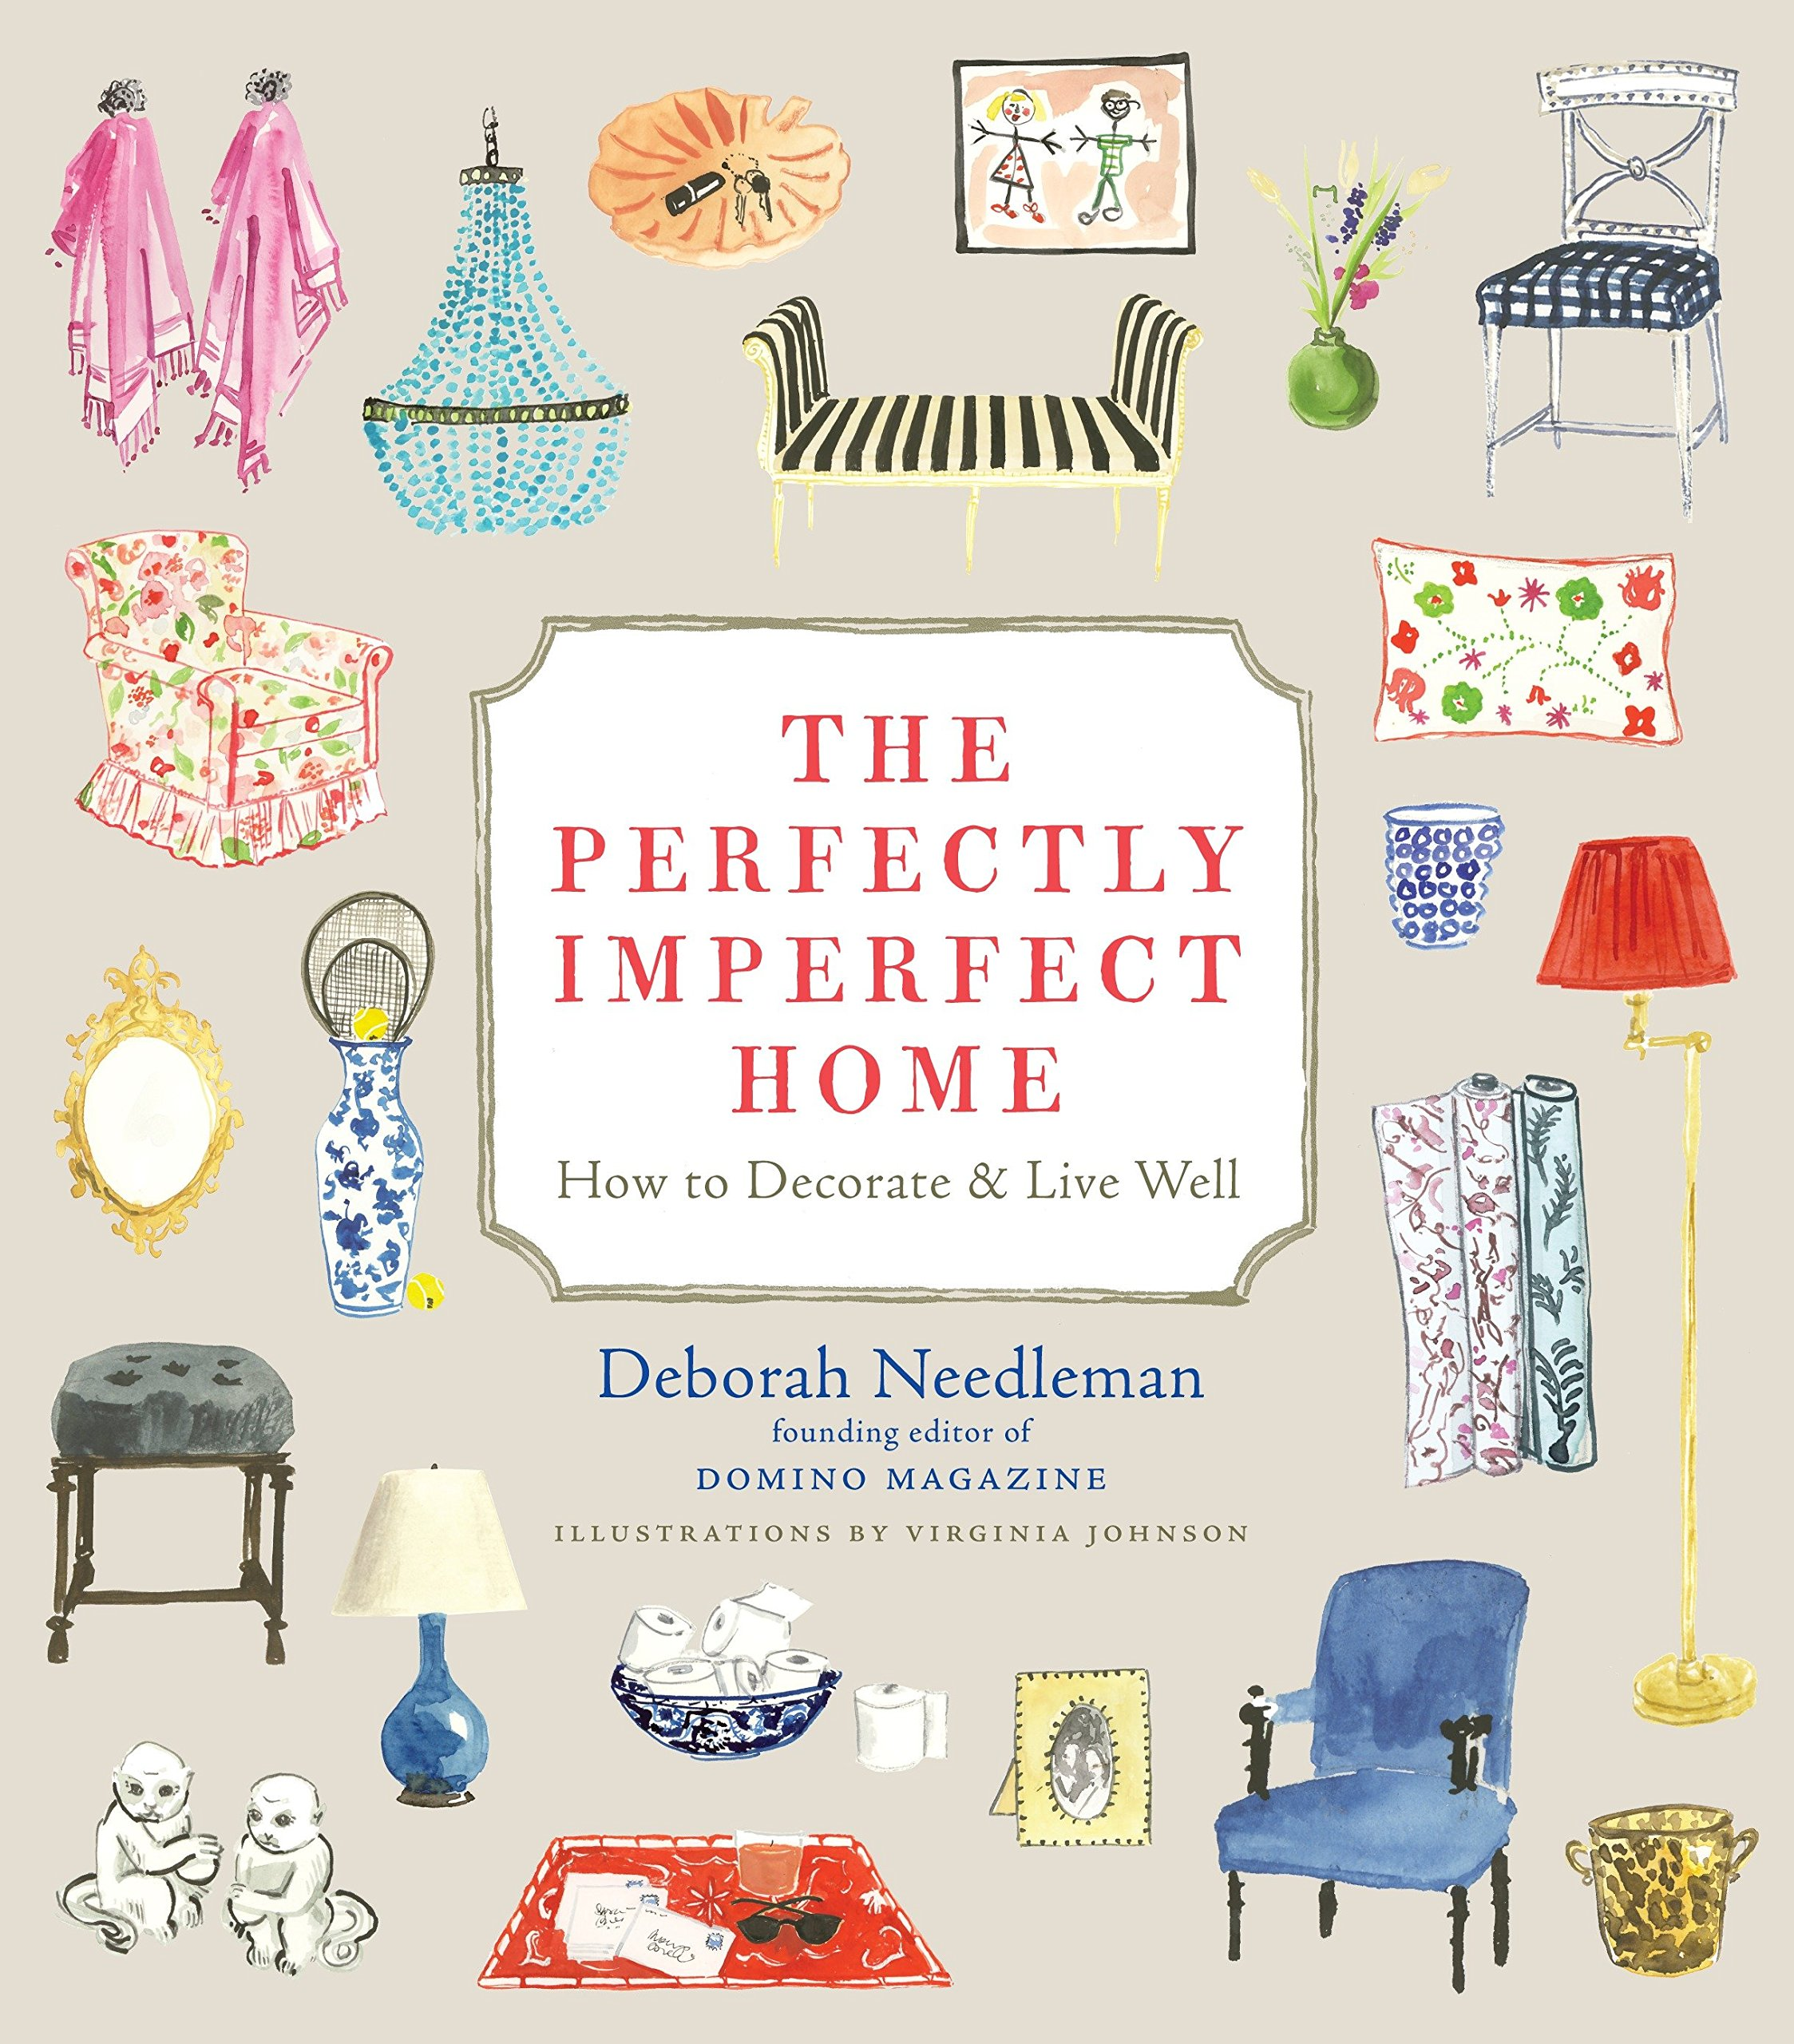 Bookshelf Styling Amazon Finds: The Perfectly Imperfect Home